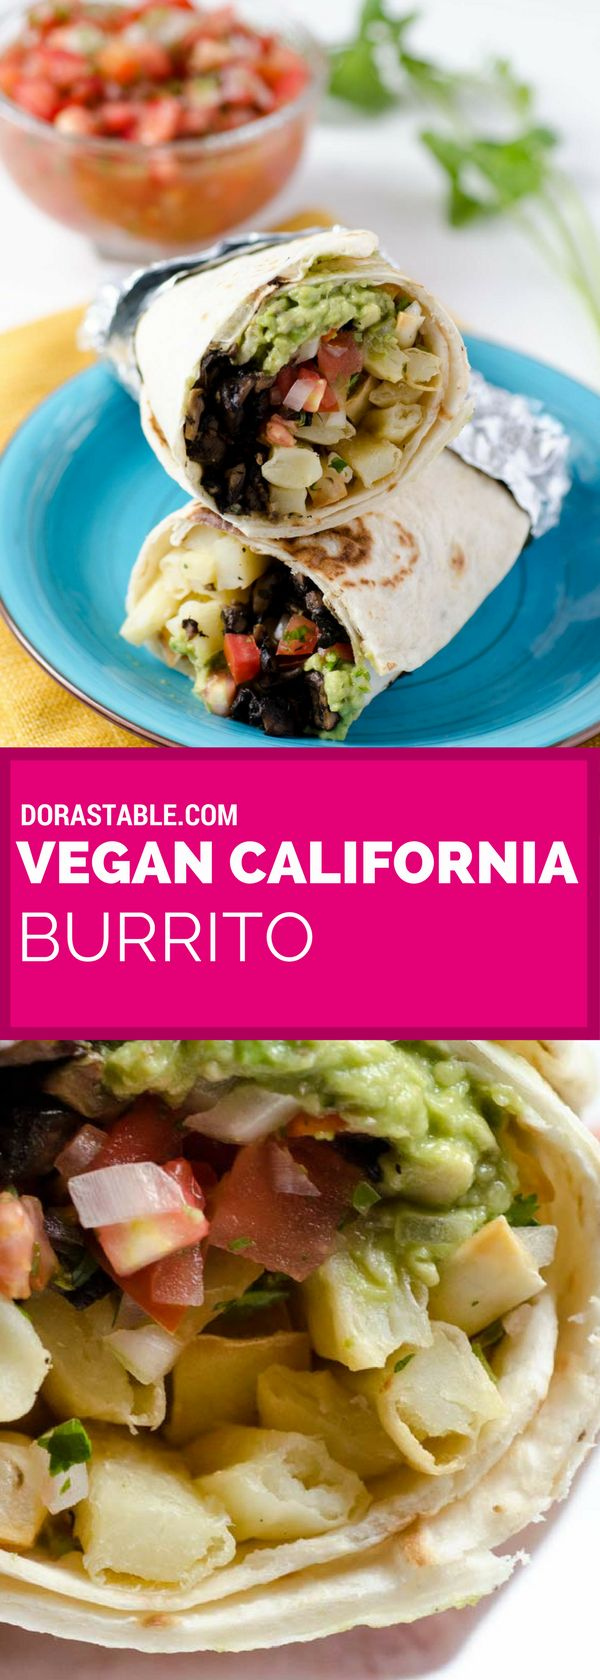 This vegan California burrito is stuffed with oven baked french fries, pico de gallo, portobello asada, spicy salsa, vegan cheese, and guacamole. It is the perfect meal after a long day surfing on a sunny beach. veganmexican | healthy | easy | vegandinner